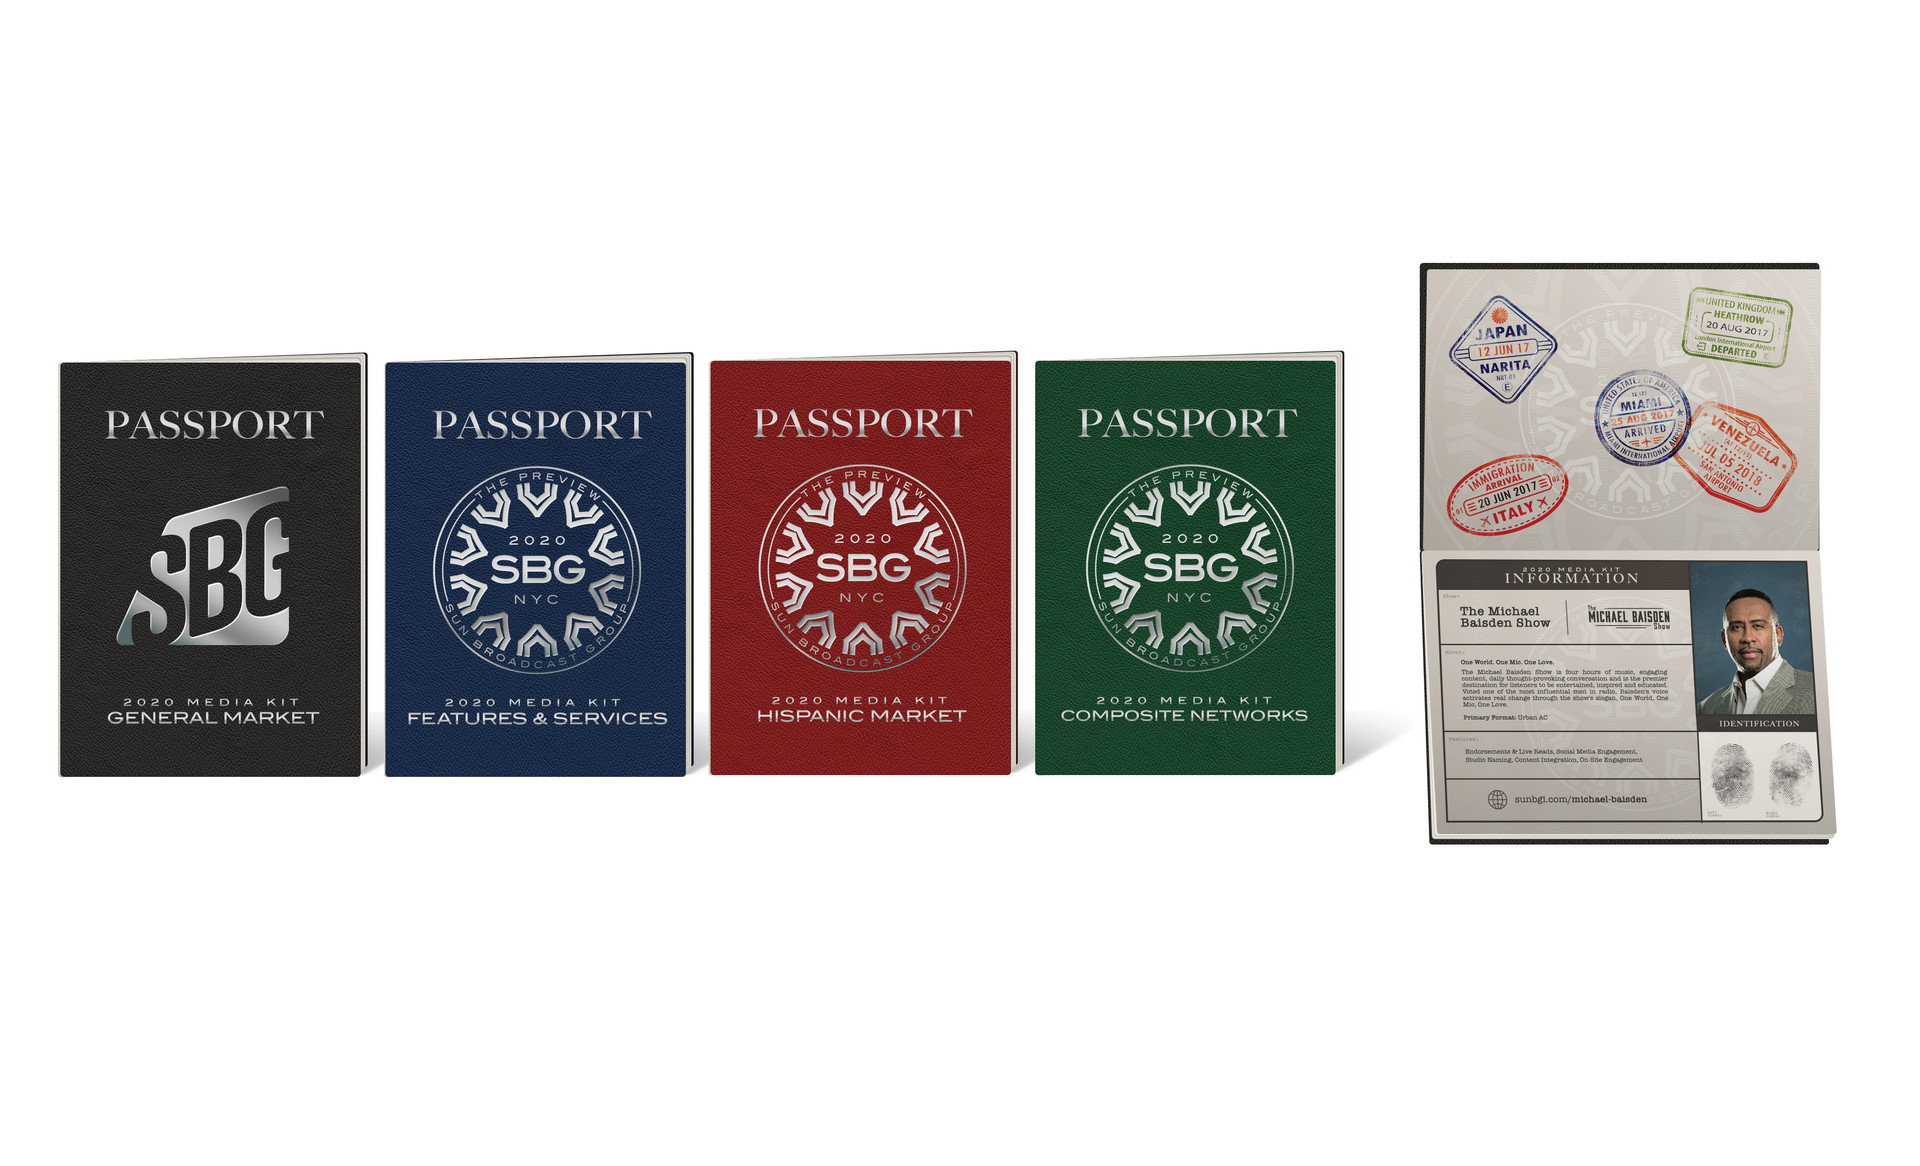 2020 The Preview - Passports with Show Talents